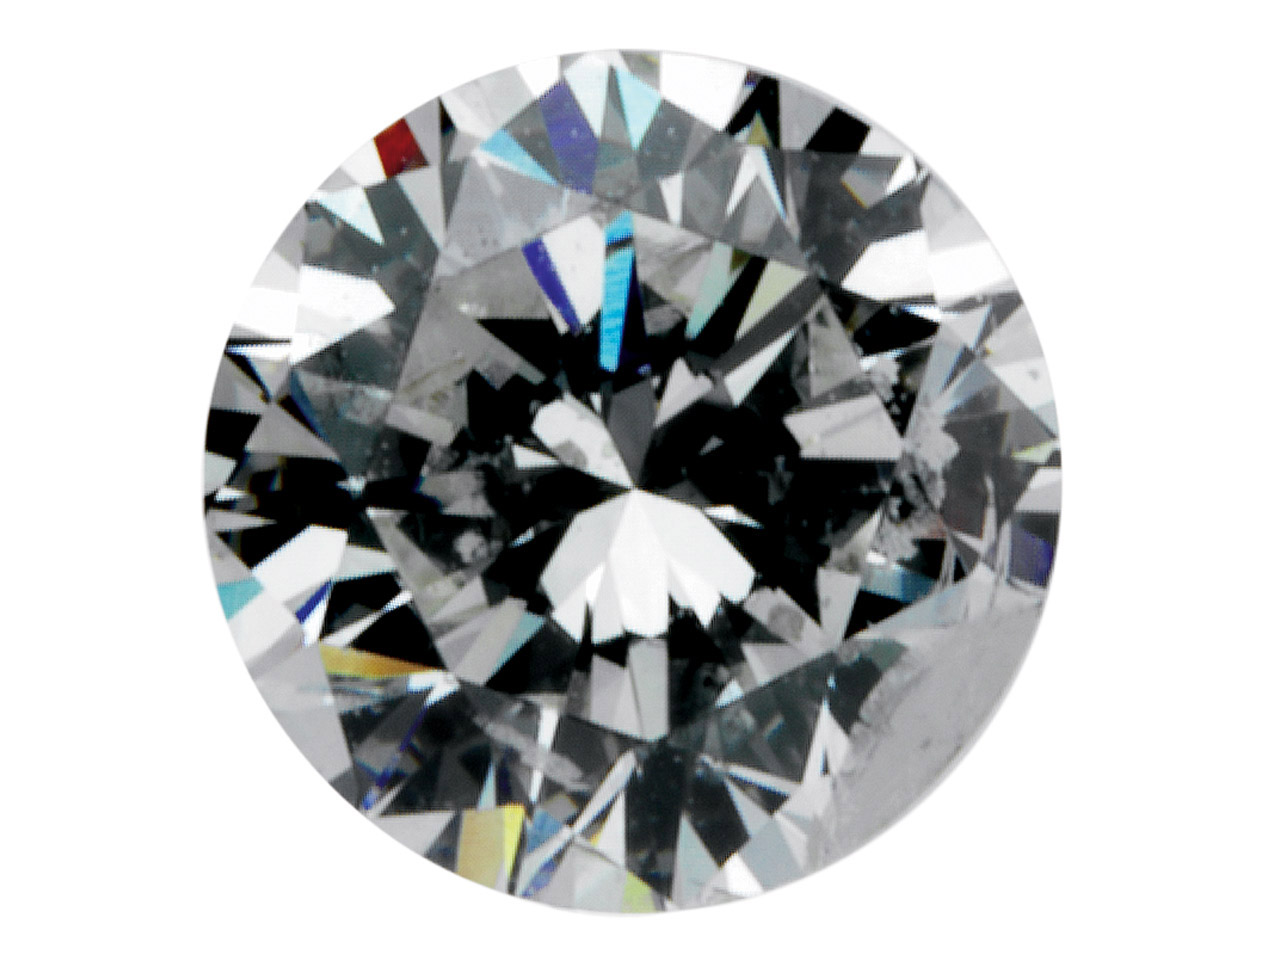 Diamond, Round, H-i/p2, 20pt/3.75mm